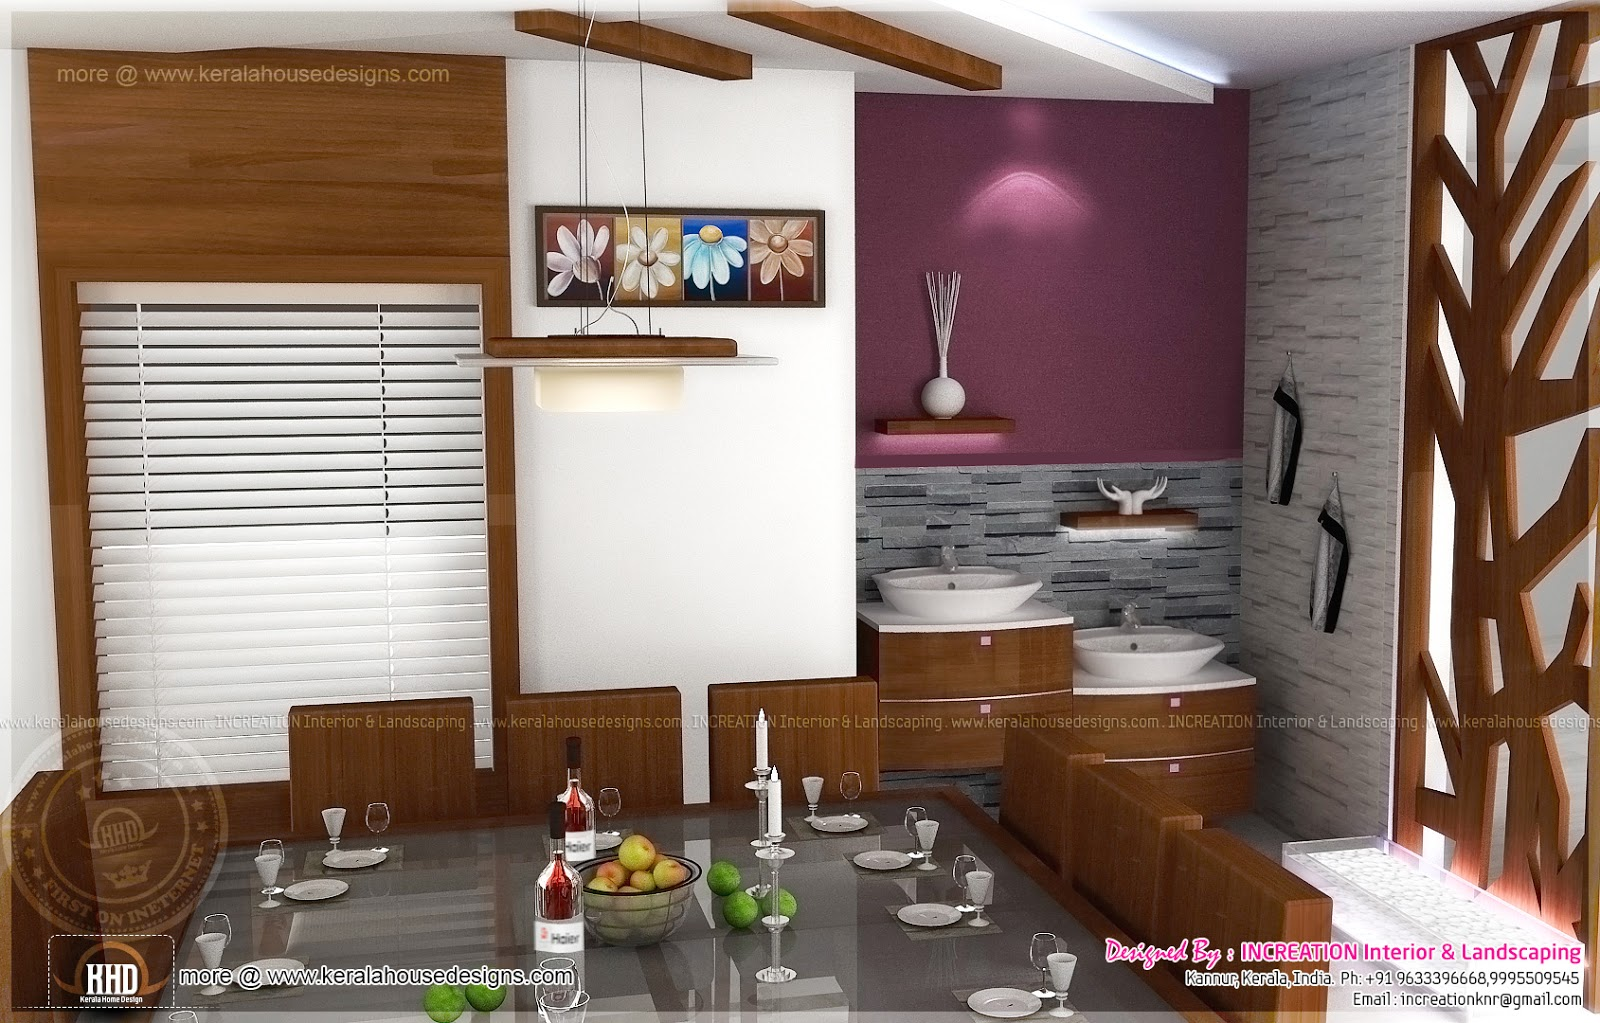 Interior Designers In Kerala For Home: Interior Designs From Kannur, Kerala